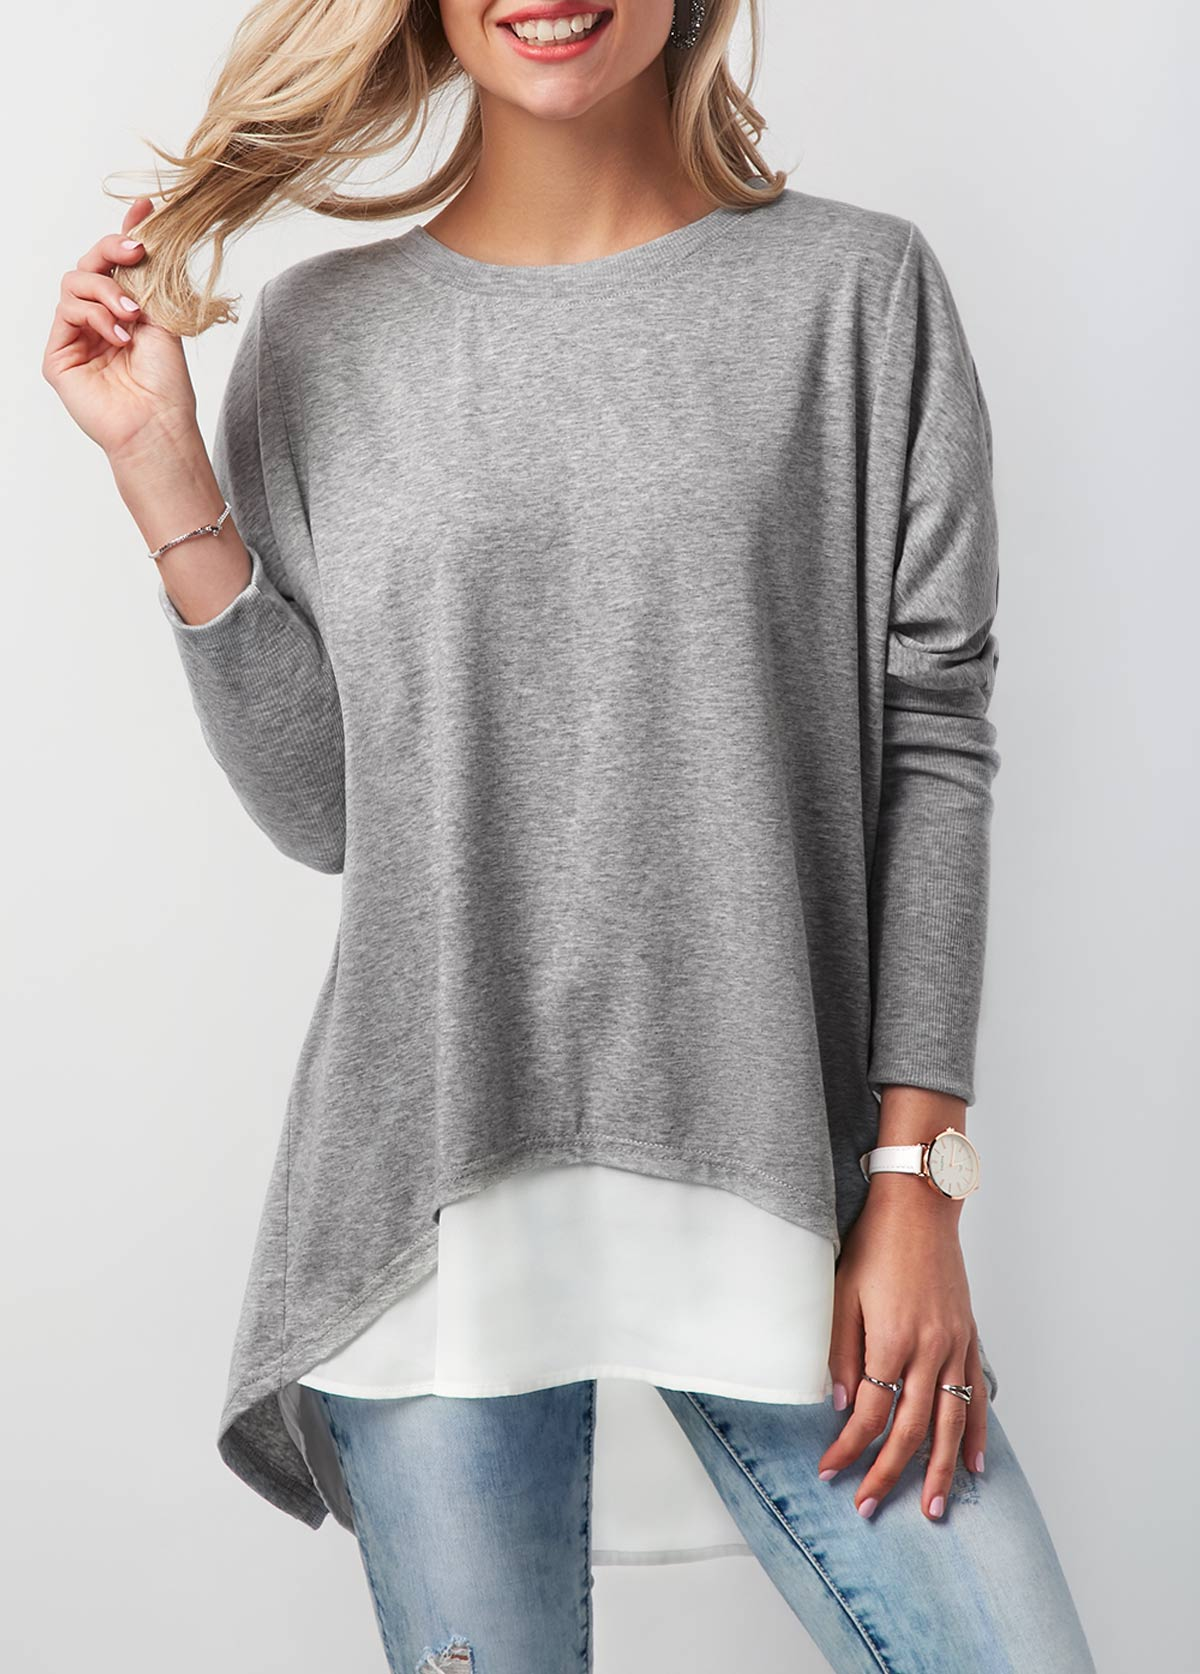 ROTITA Round Neck Button Back Contrast T Shirt